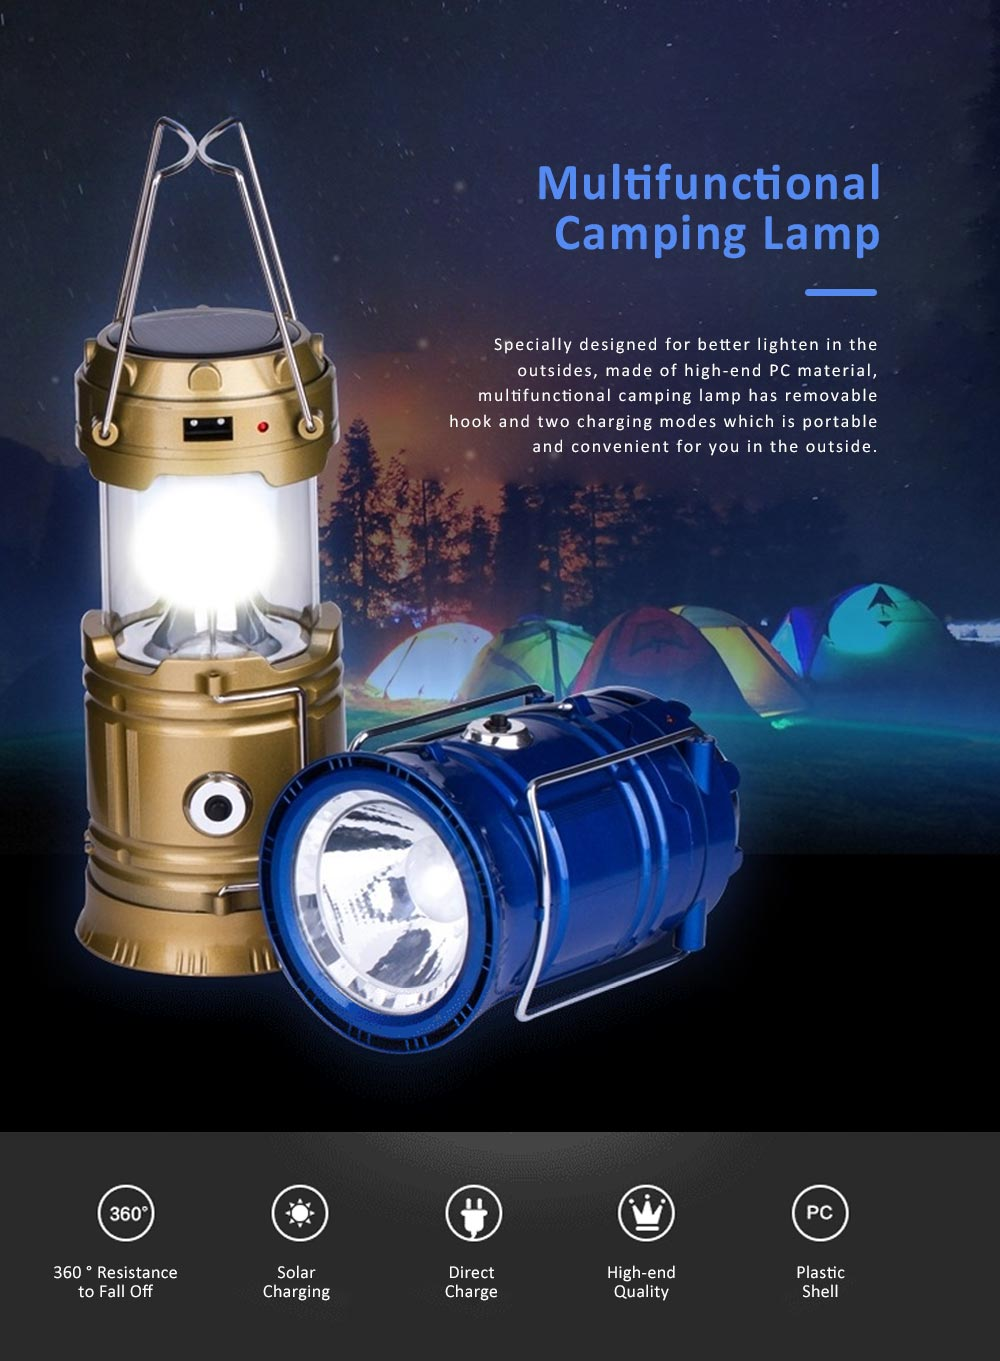 Stretchable Brightened Lantern for Camping, Hinking, Outdoors, Multifunctional Camping Lamp with Removable Hook, Two Charging Modes Lights 0